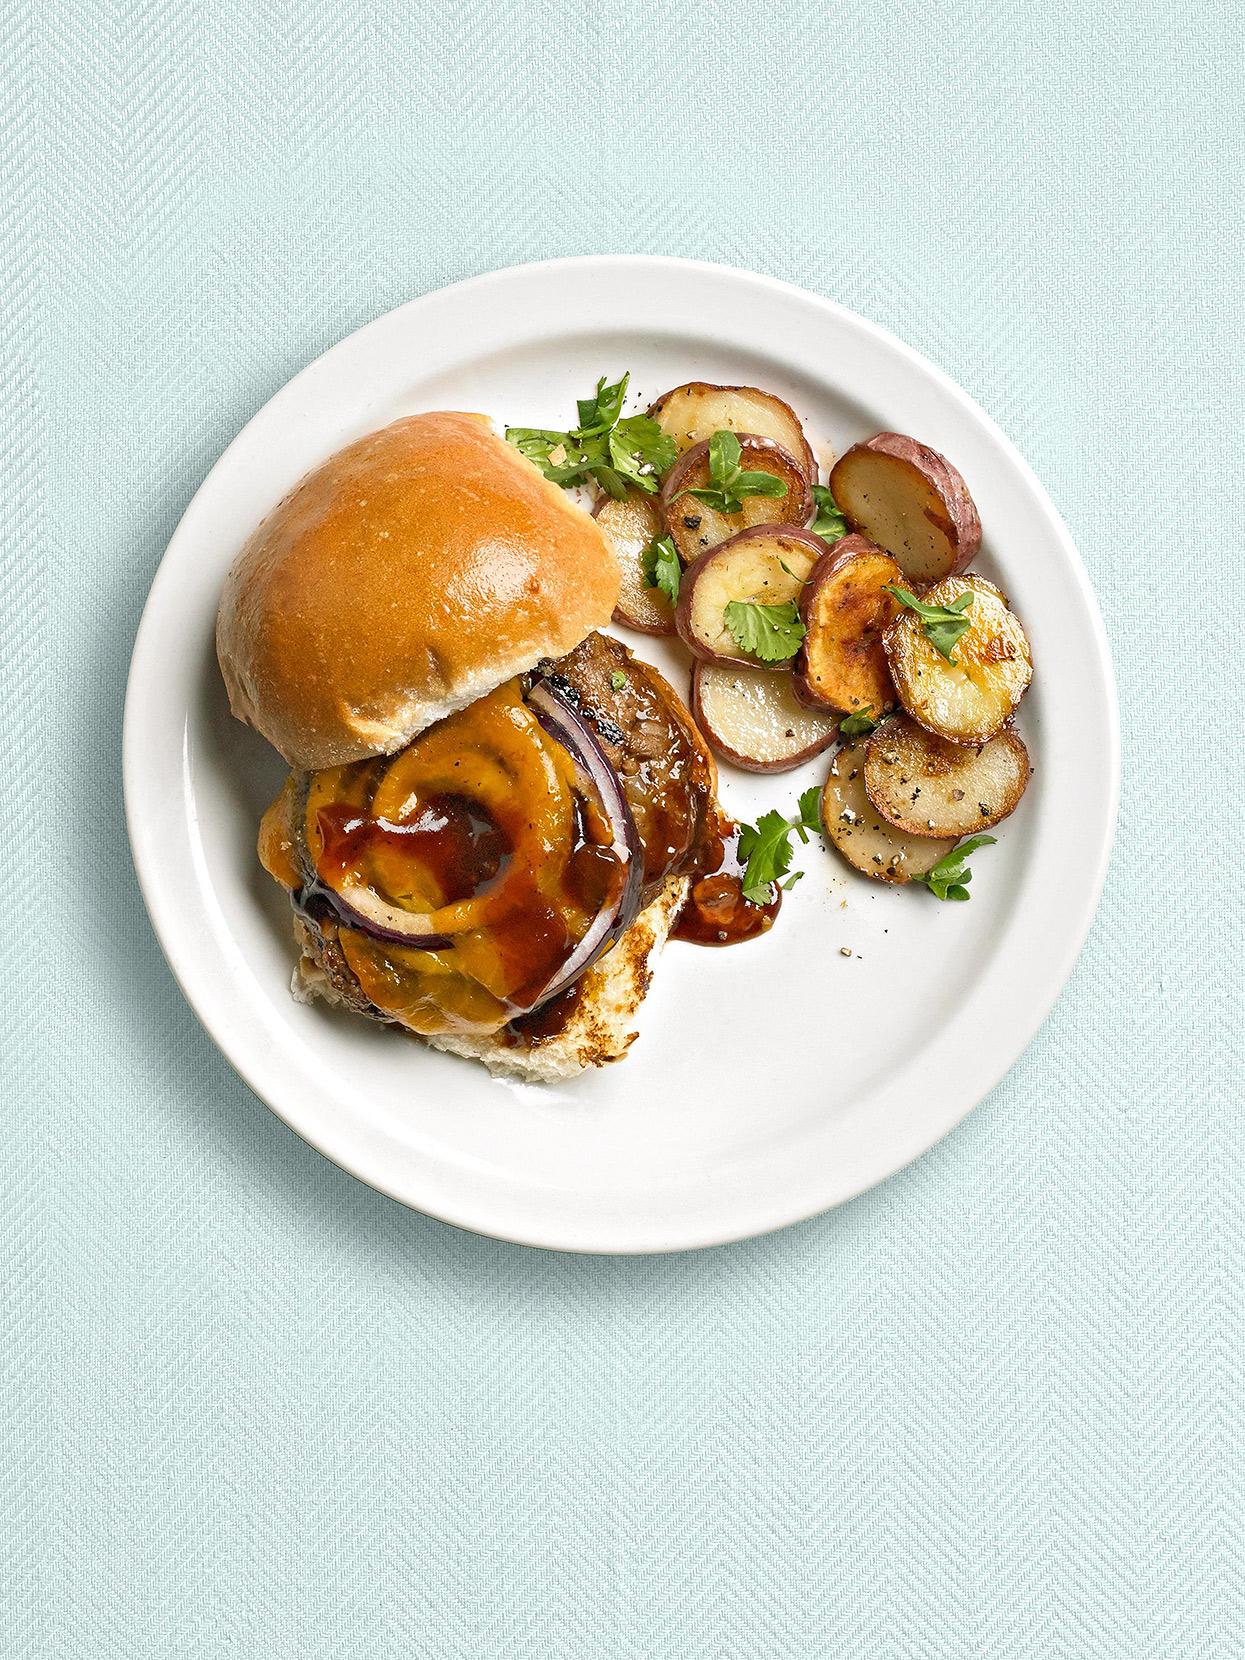 Grilled Meat Loaf Burgers